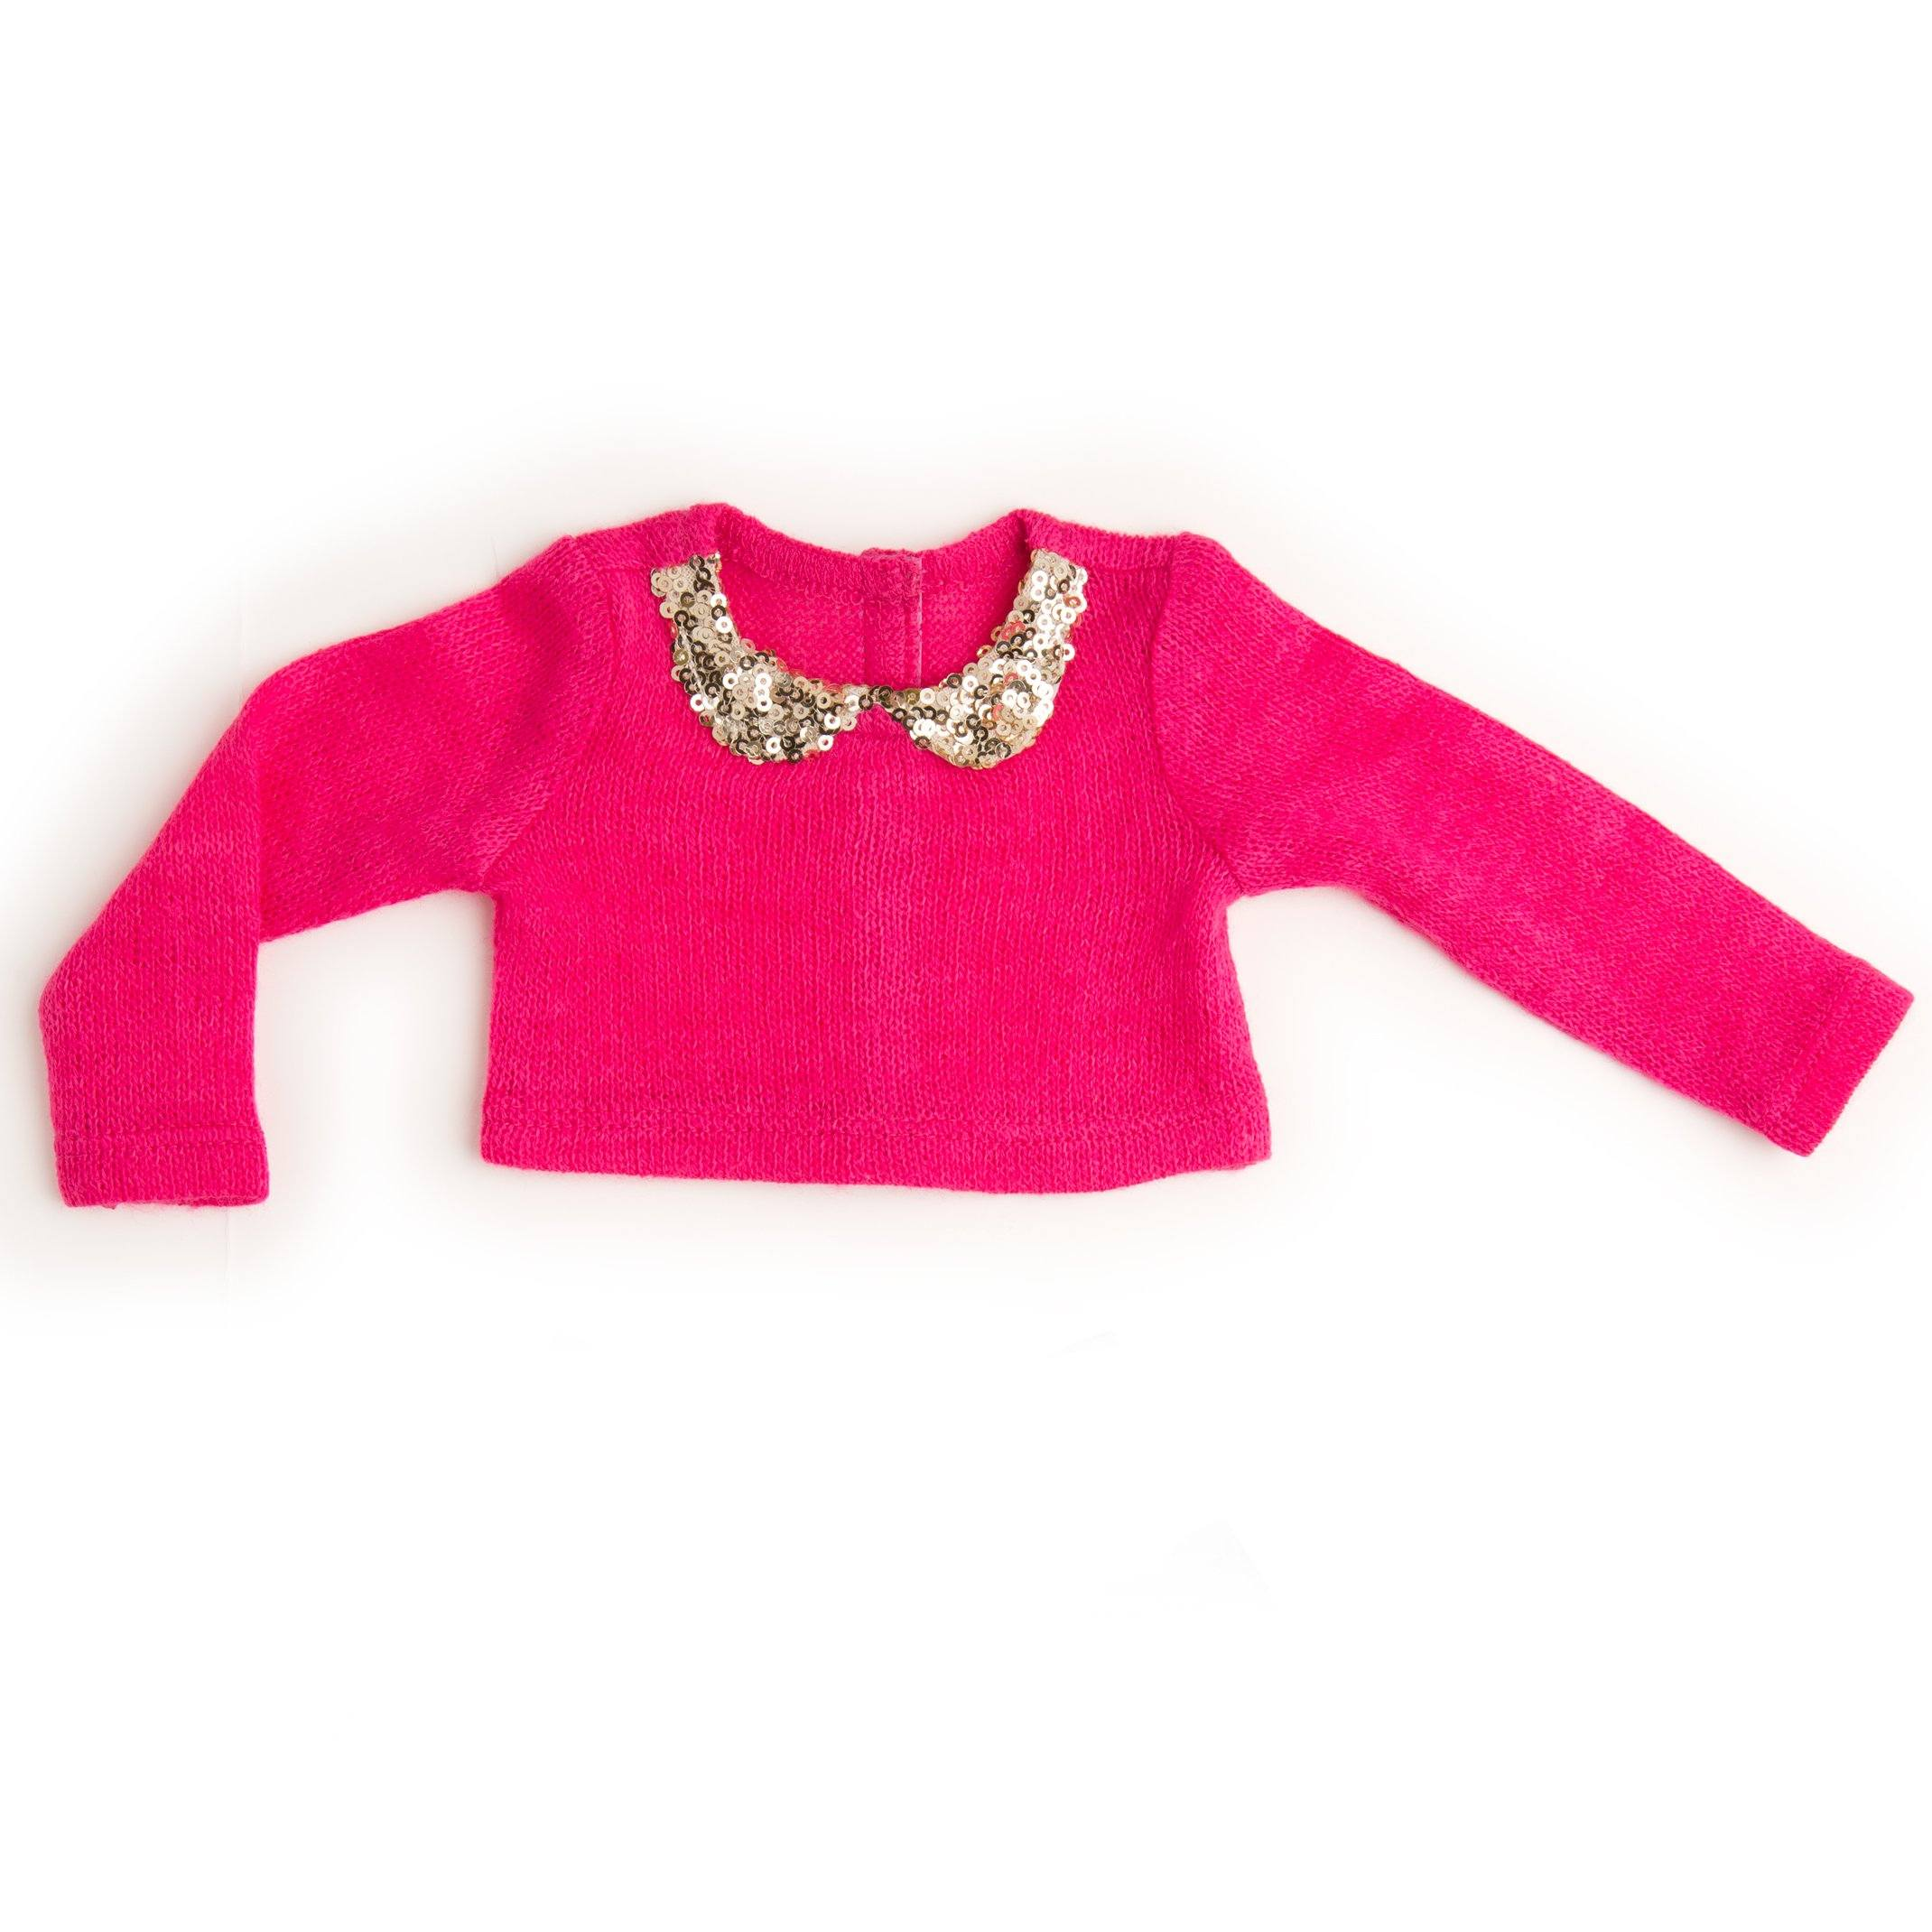 pink sweater with sparkly collar for 18 inch doll